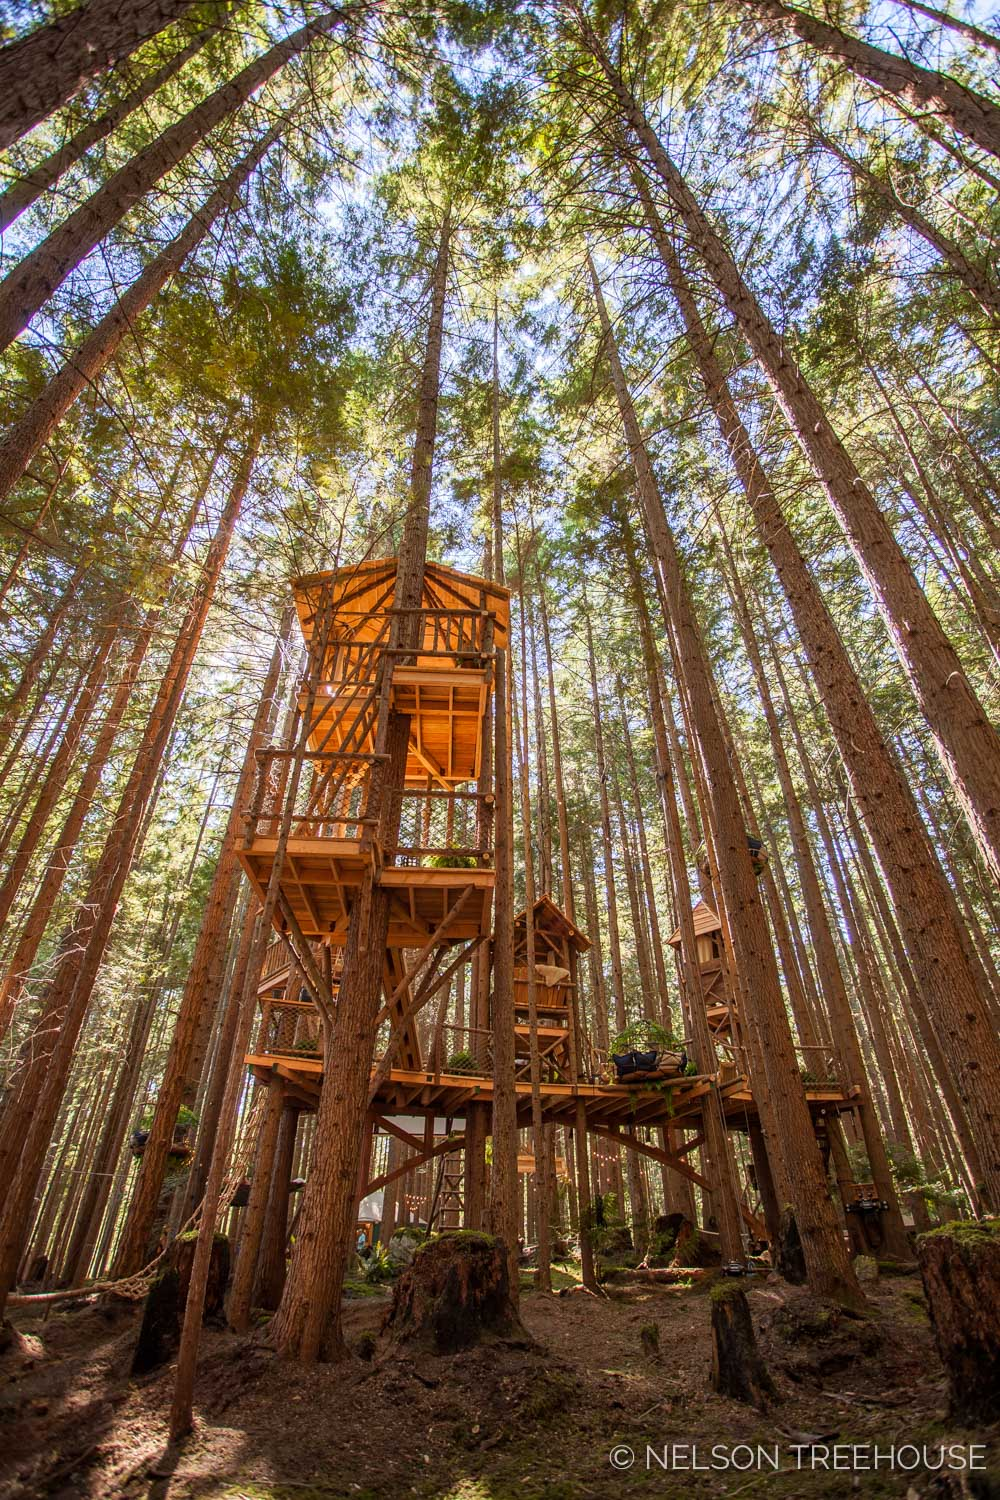 Treetop-Movie-Theater-2018-Nelson-Treehouse-252.jpg